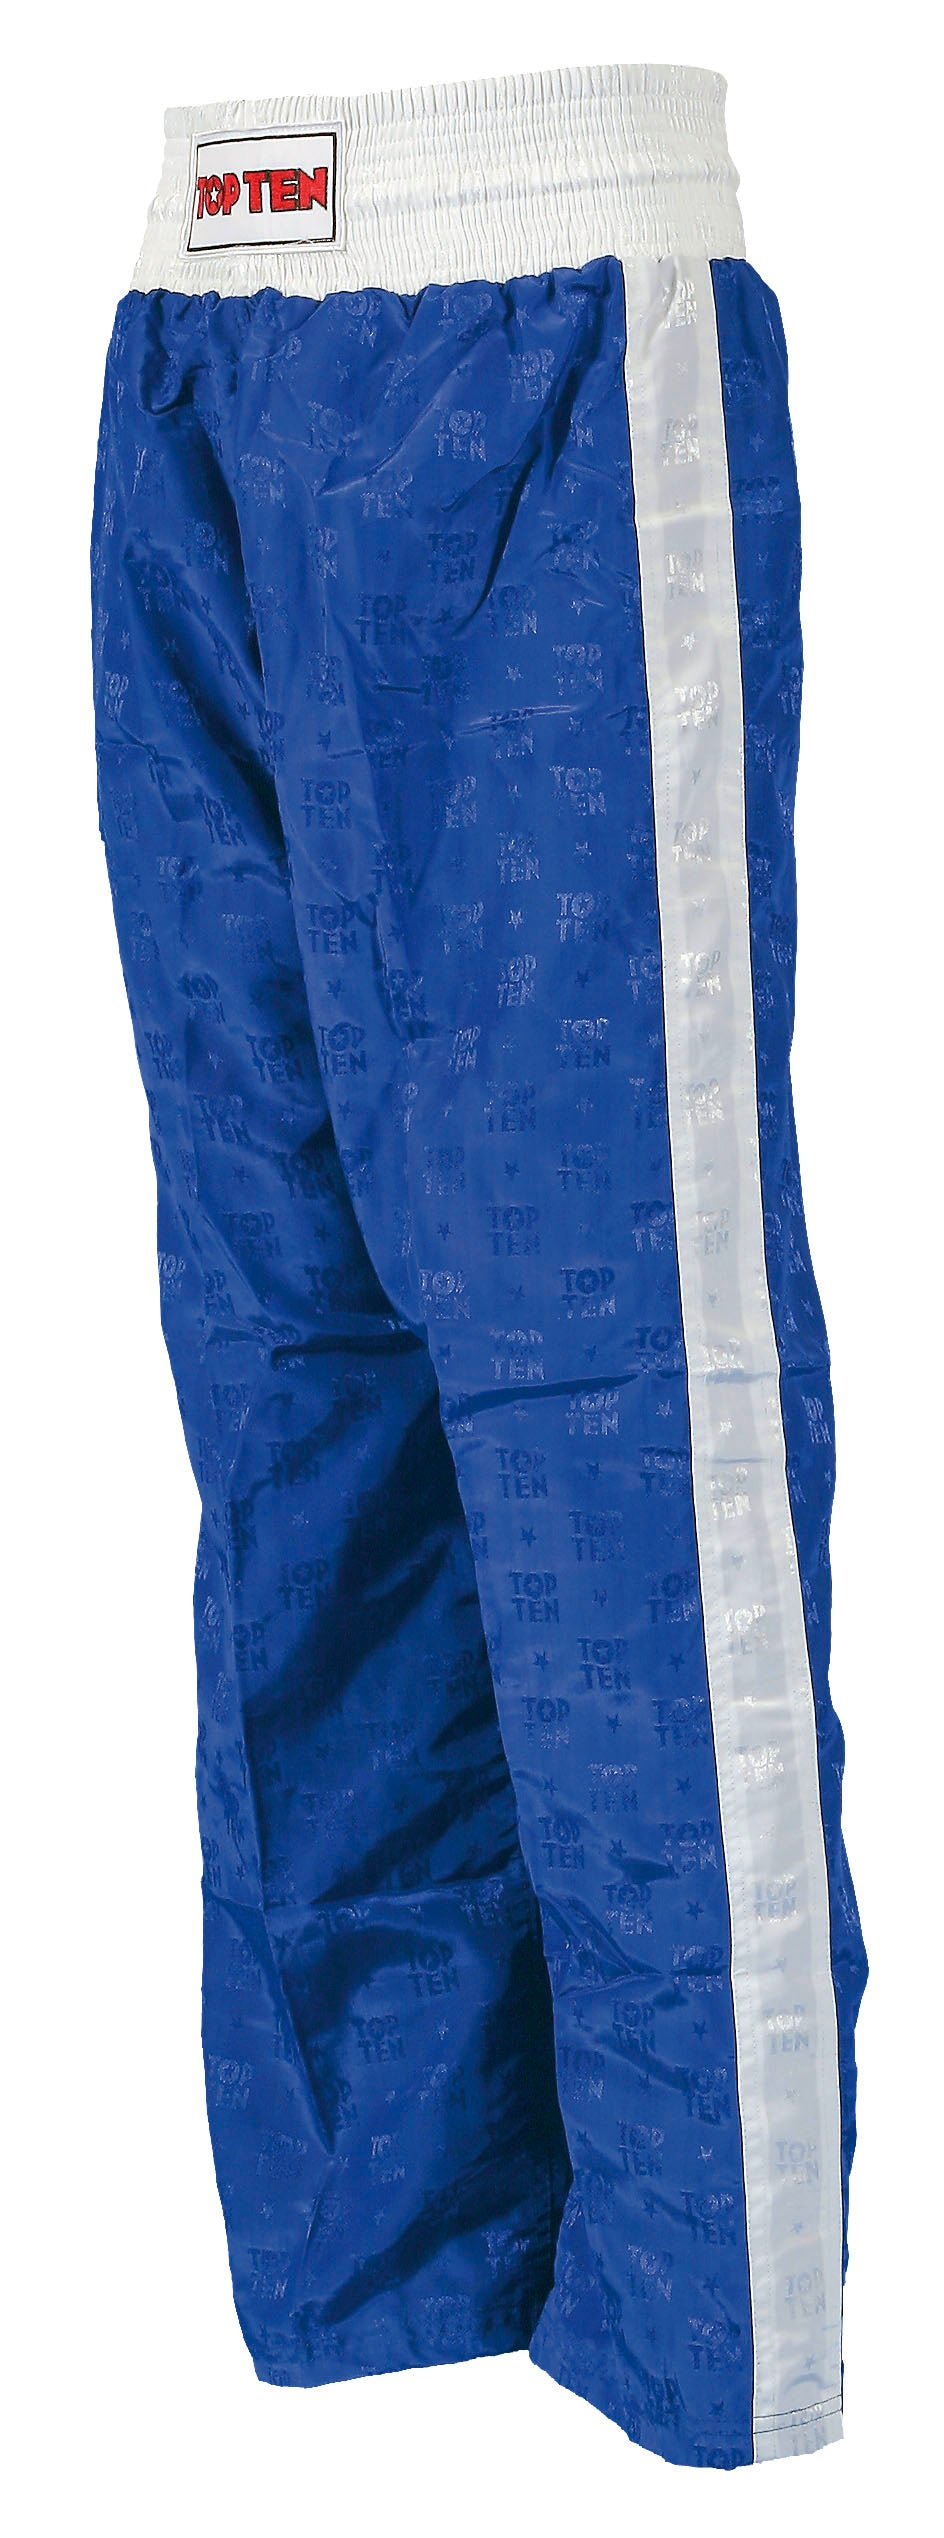 Top Ten Kickboxing Pants Blue with White Stripe